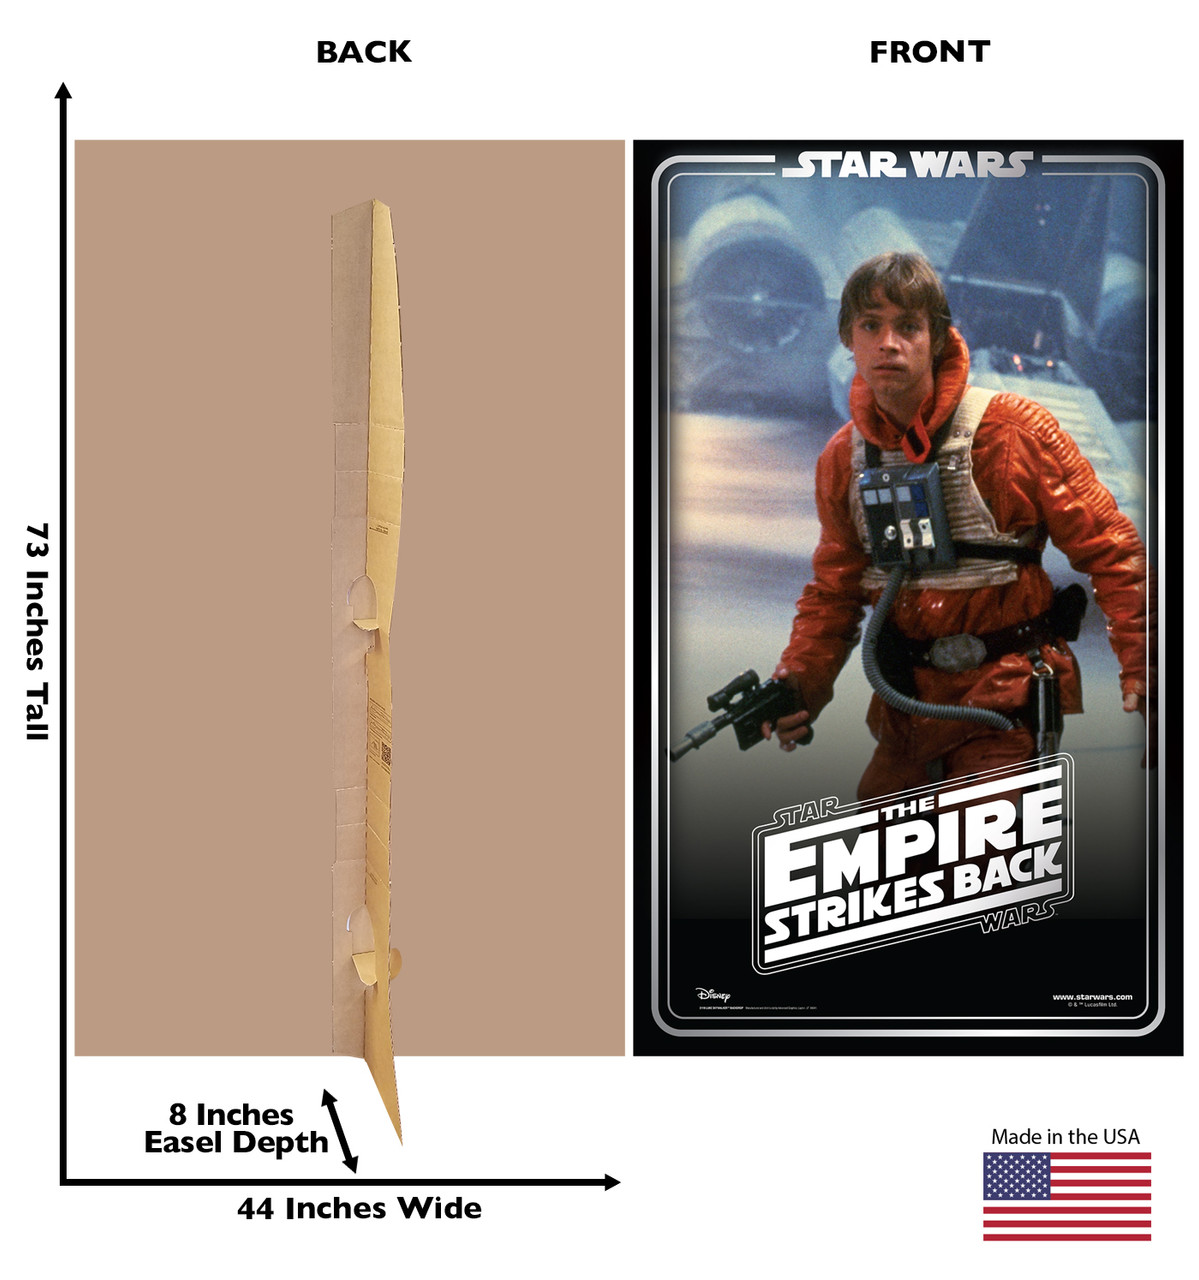 Life-size cardboard standee backdrop of Luke Skywalker. Celebrating 40 years, with front and back dimensions.